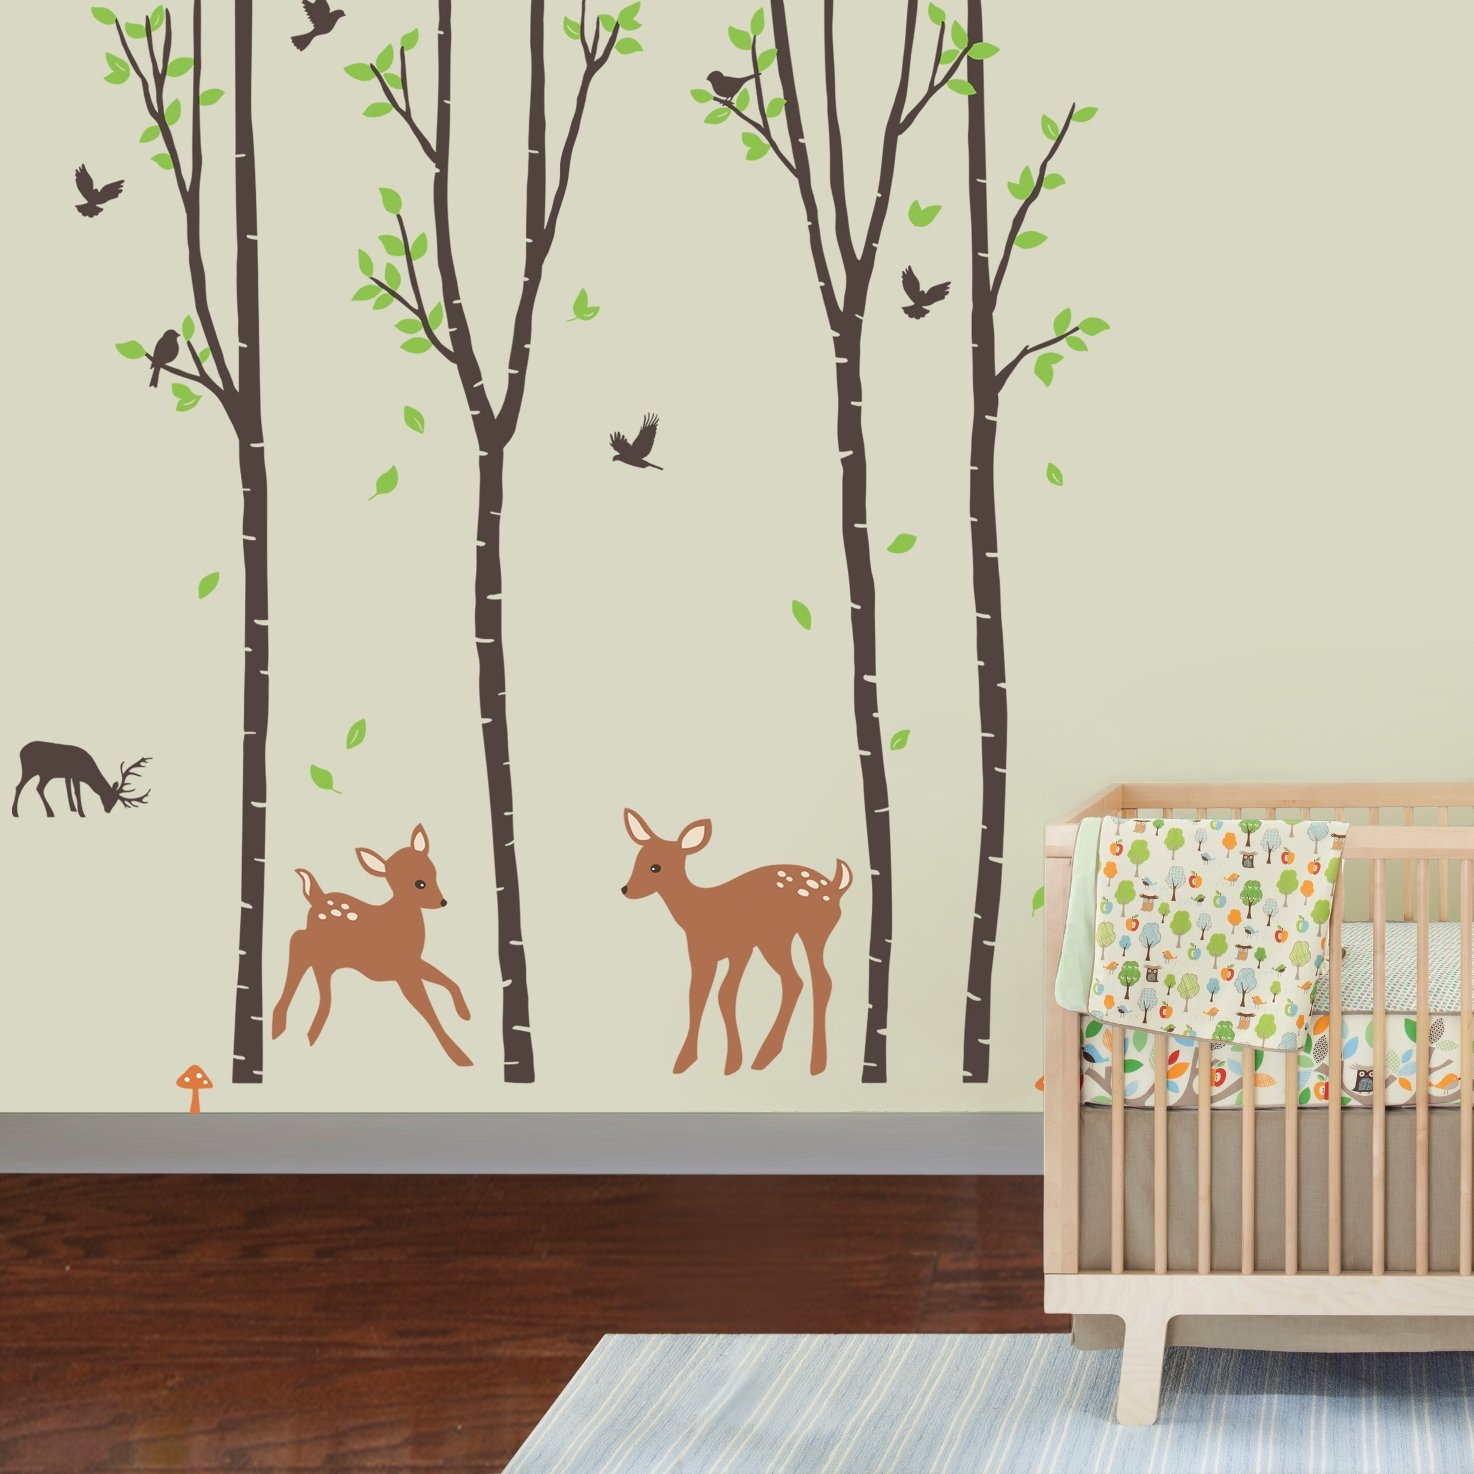 Amazon.com: Giant Wall Sticker Decals   Birch Tree Forest With Deers And  Flying Birds Baby (trees Are 6 Feet Tall): Home Improvement